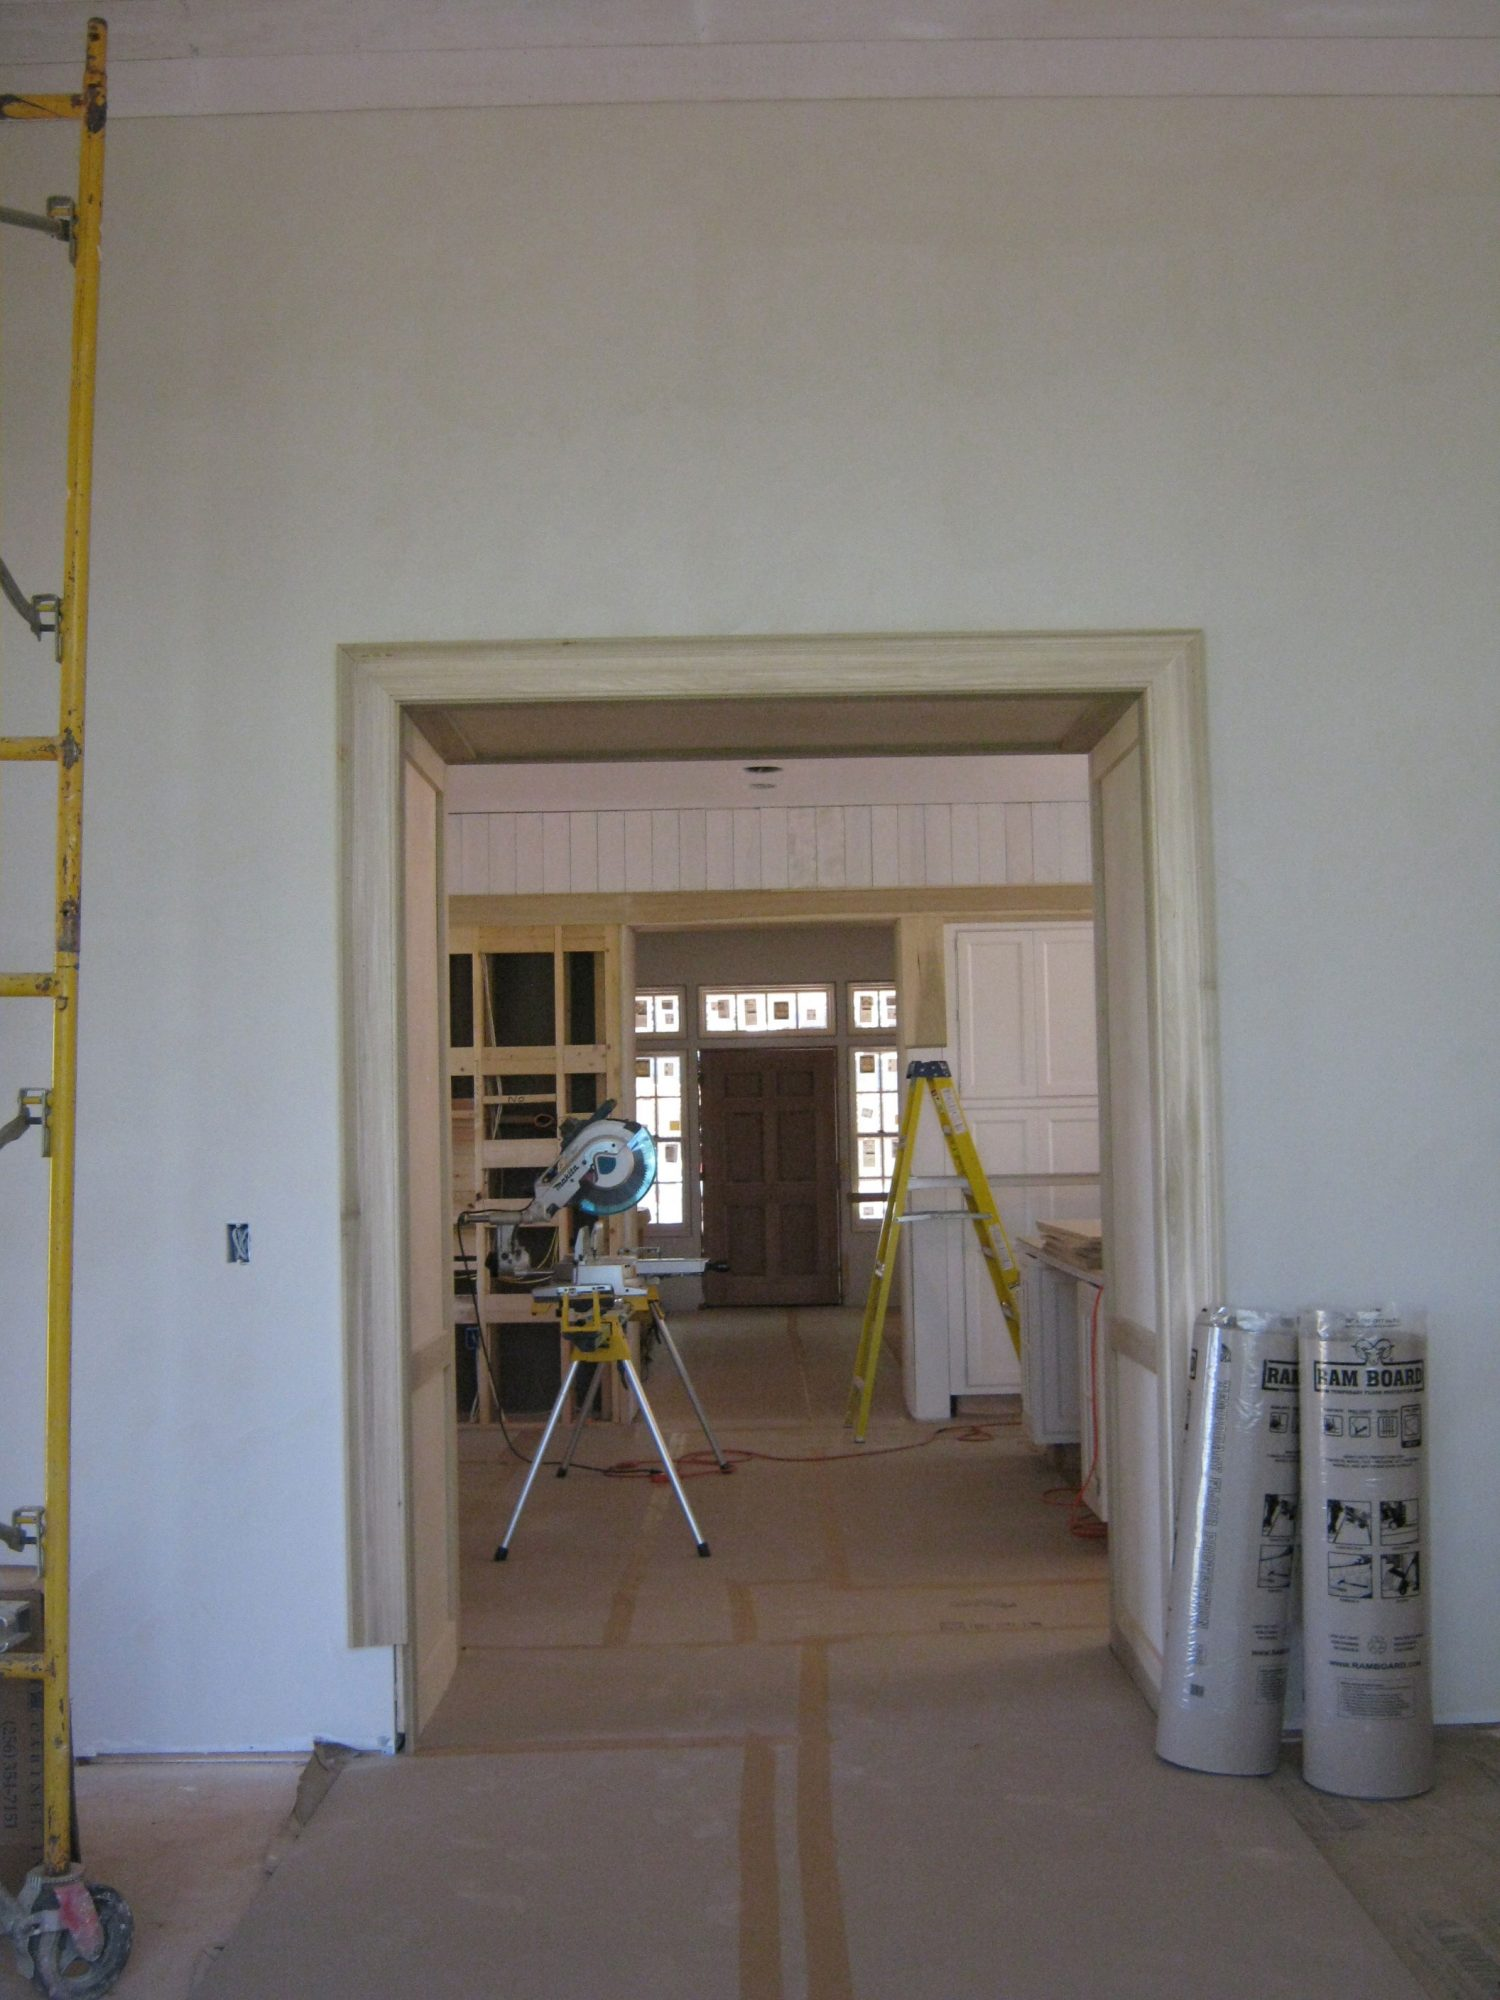 Construction Doorway